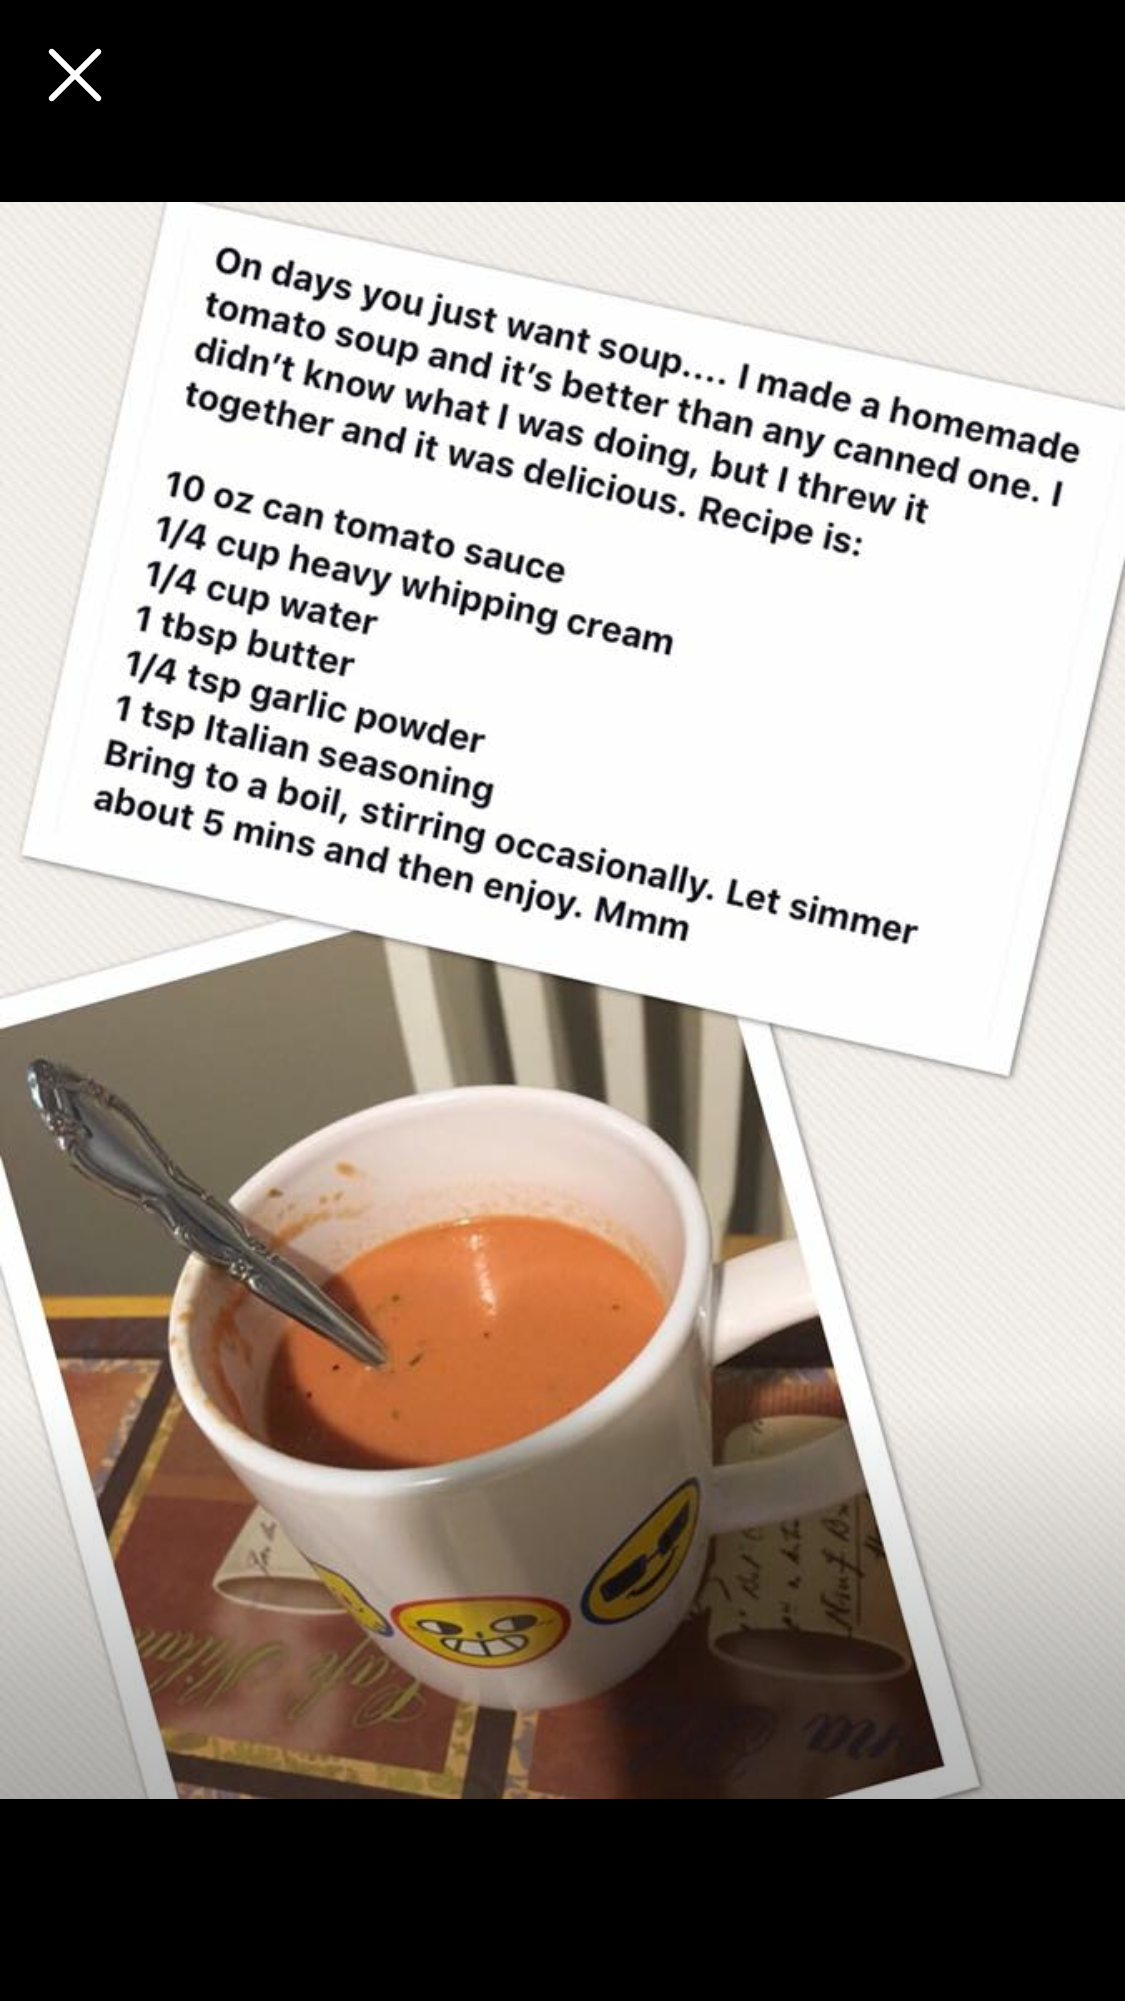 tomato soup on low carb diet